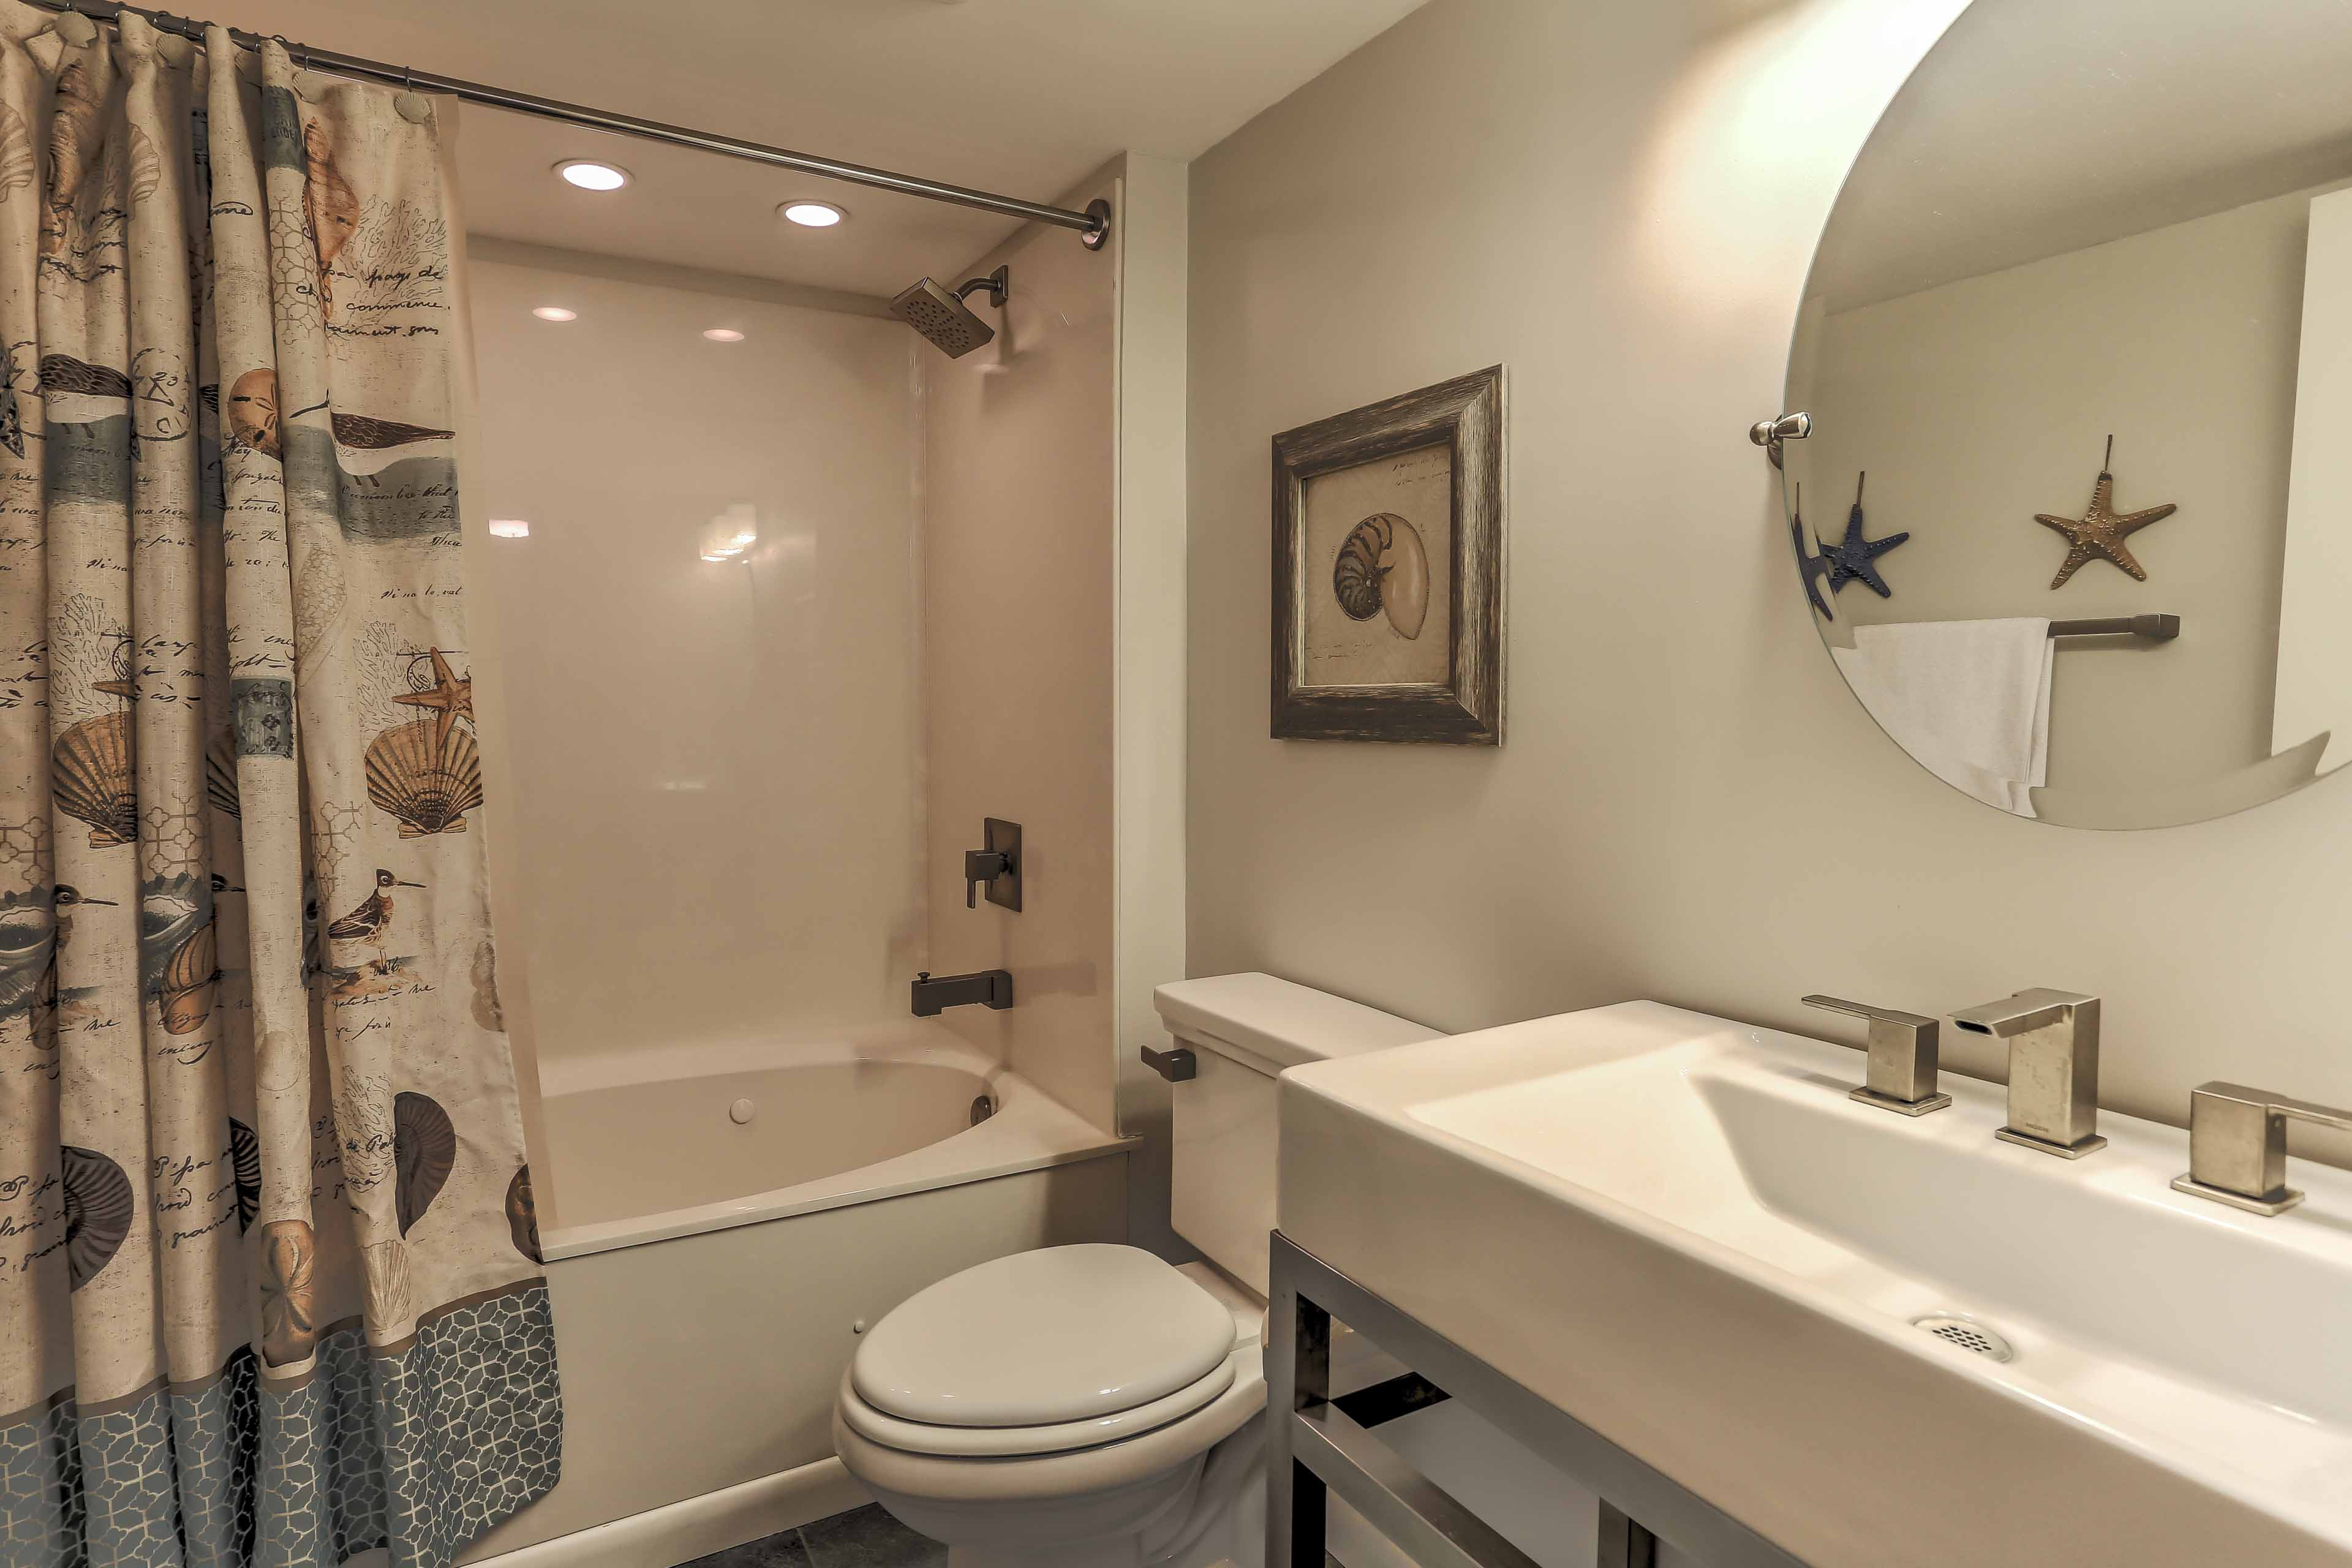 Take a hot shower in the shower/tub combo of the second bathroom.